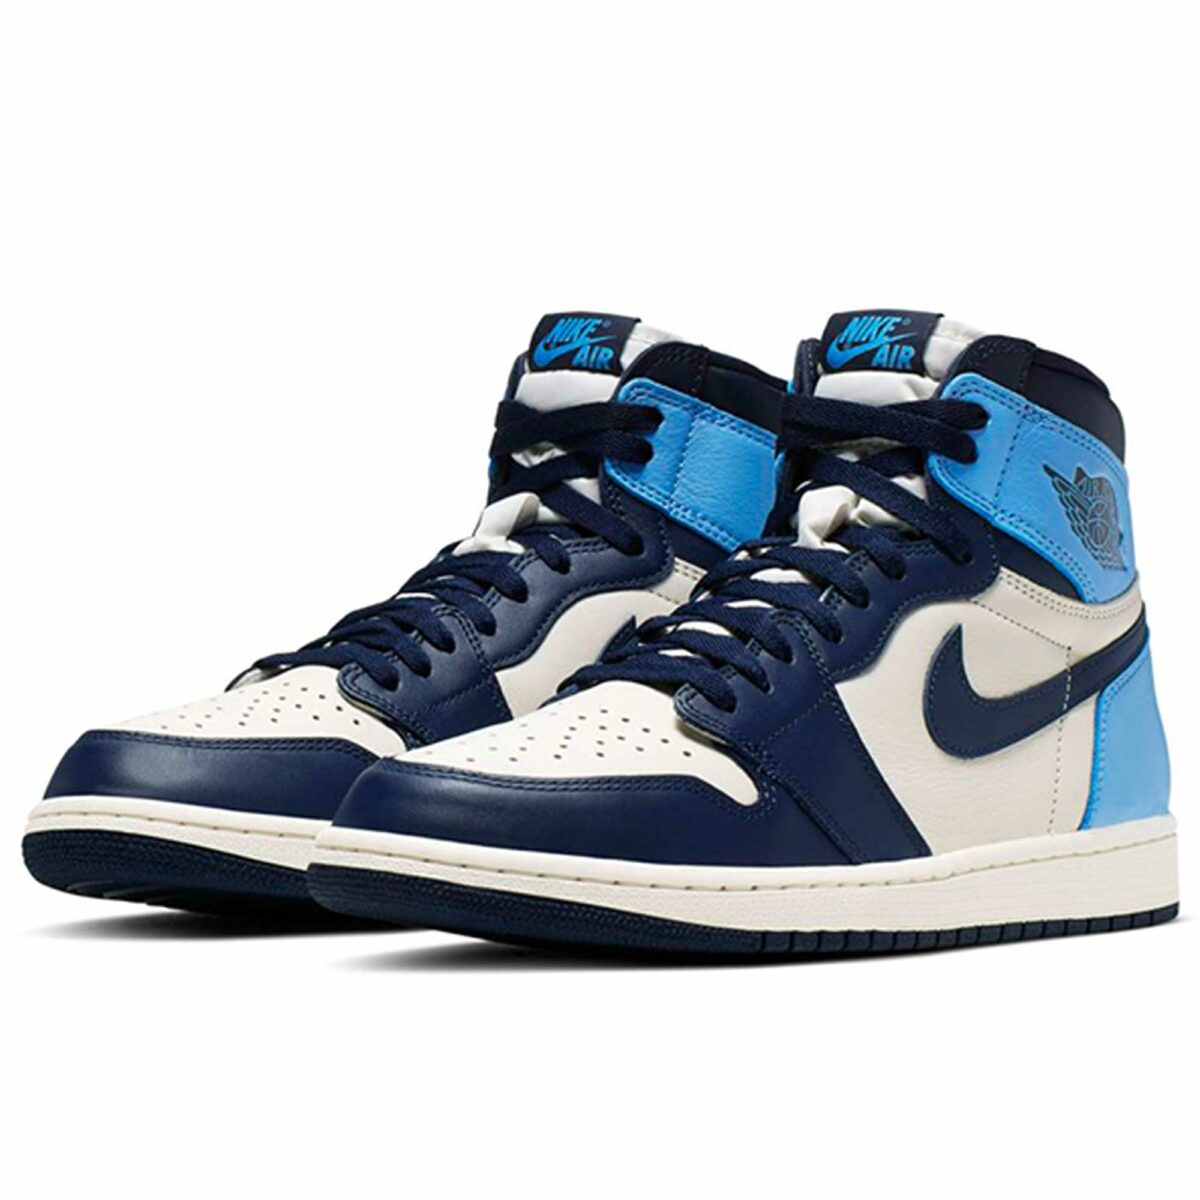 nike air Jordan 1 retro high og obsidian 555088_140 купить